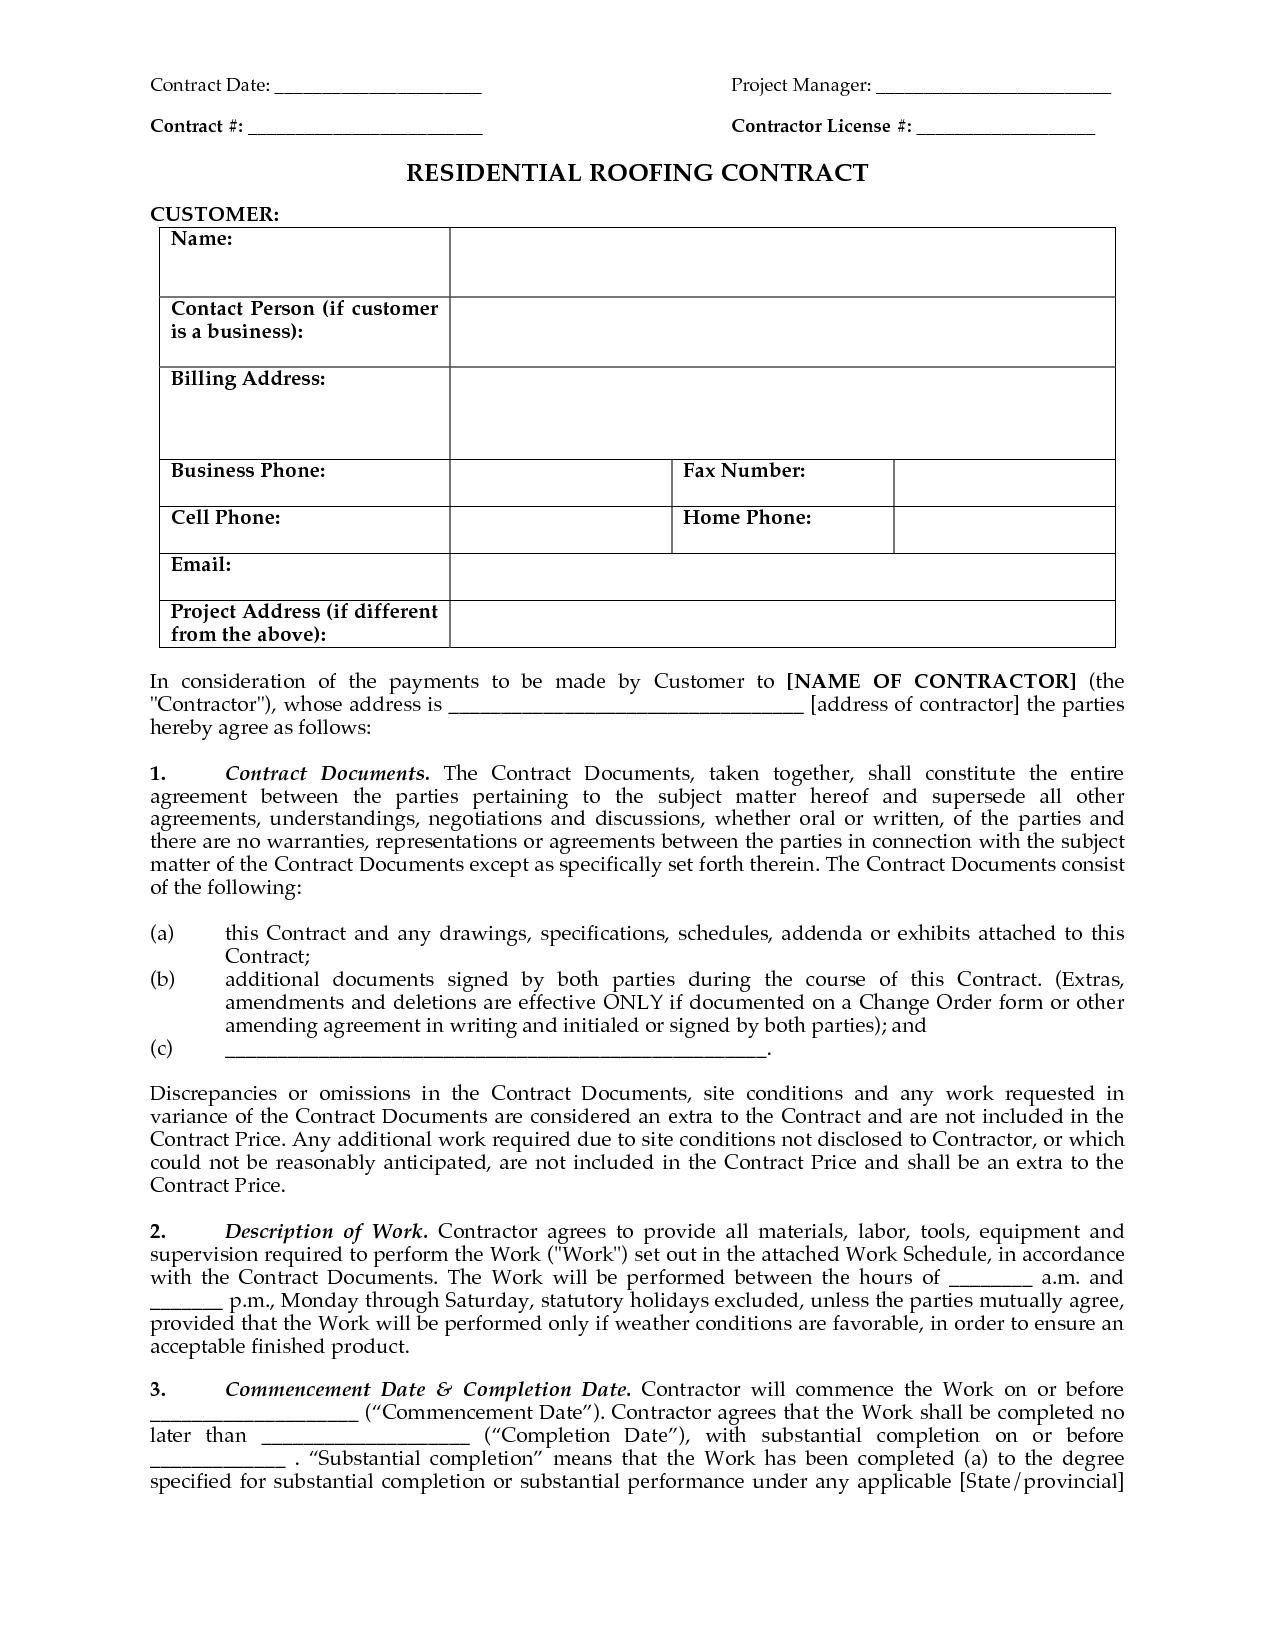 Roof Consultant Cover Letter Residential Roofing Contract Contract Date Project Manager By